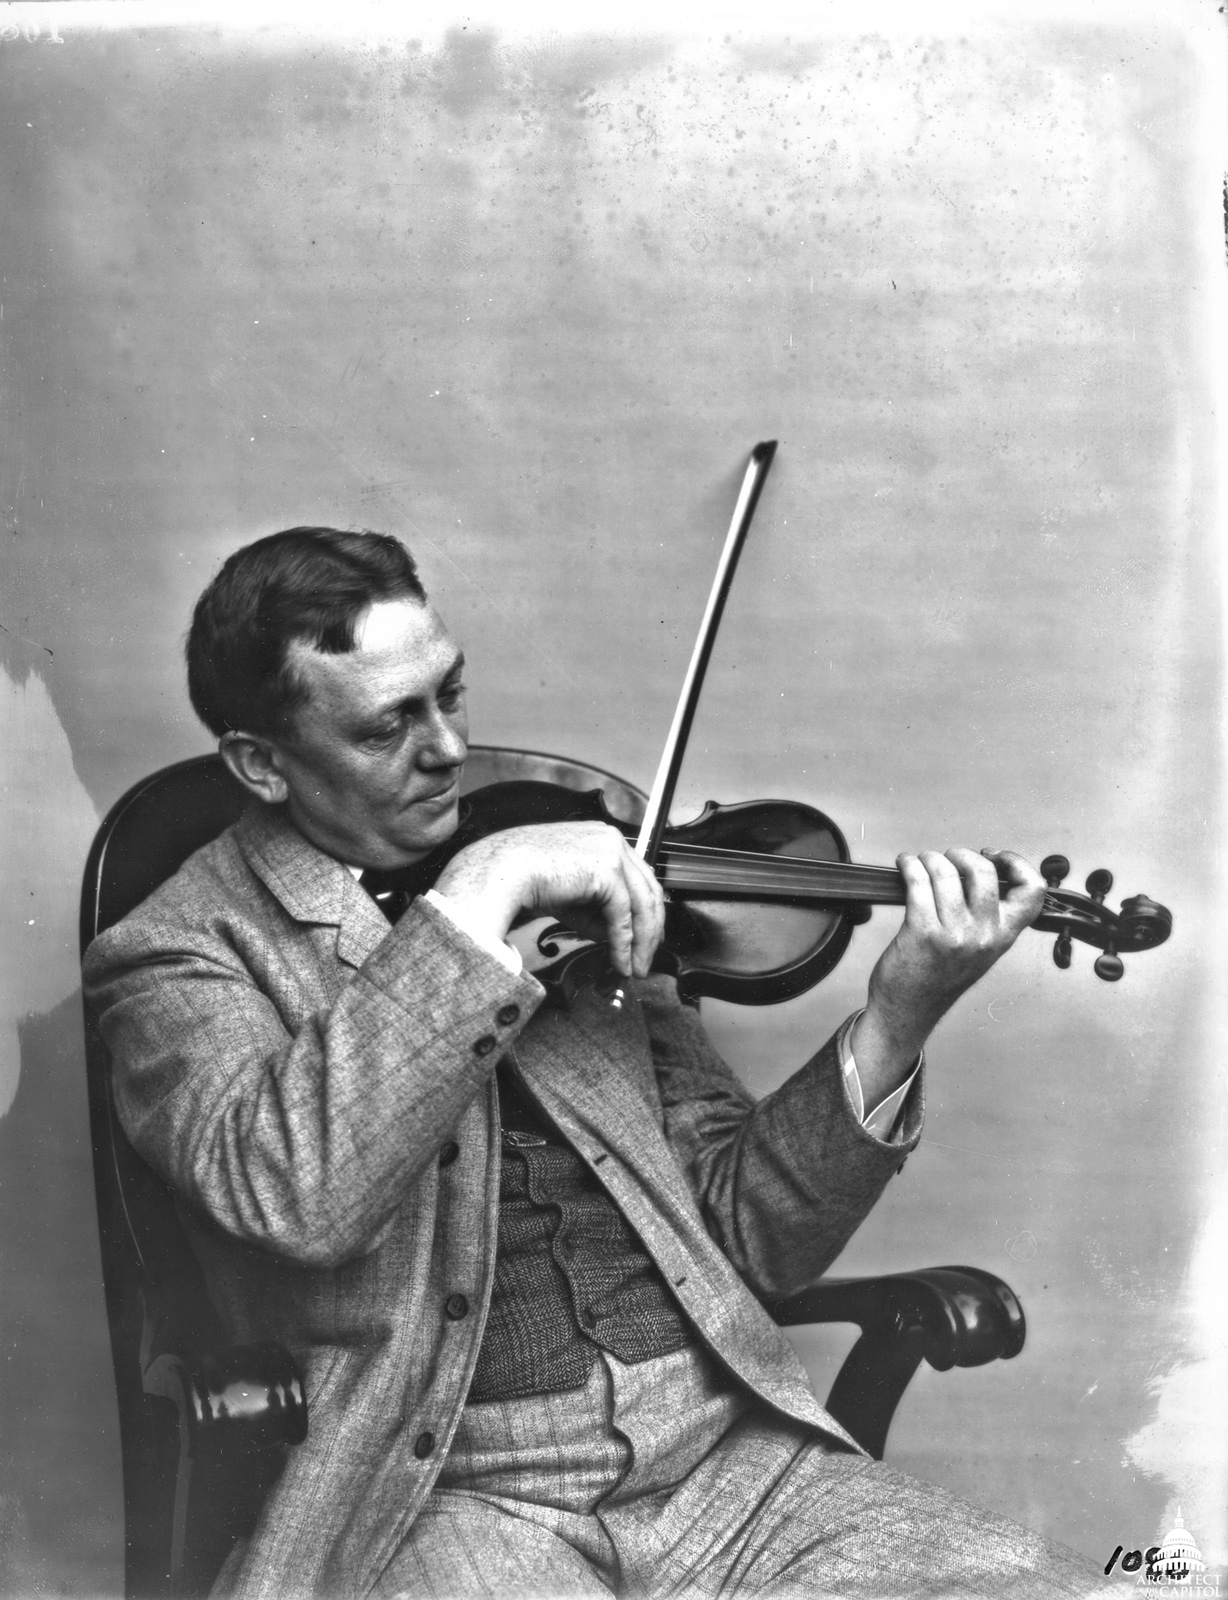 Elliott Woods, 6th Architect of the Capitol, playing the violin.